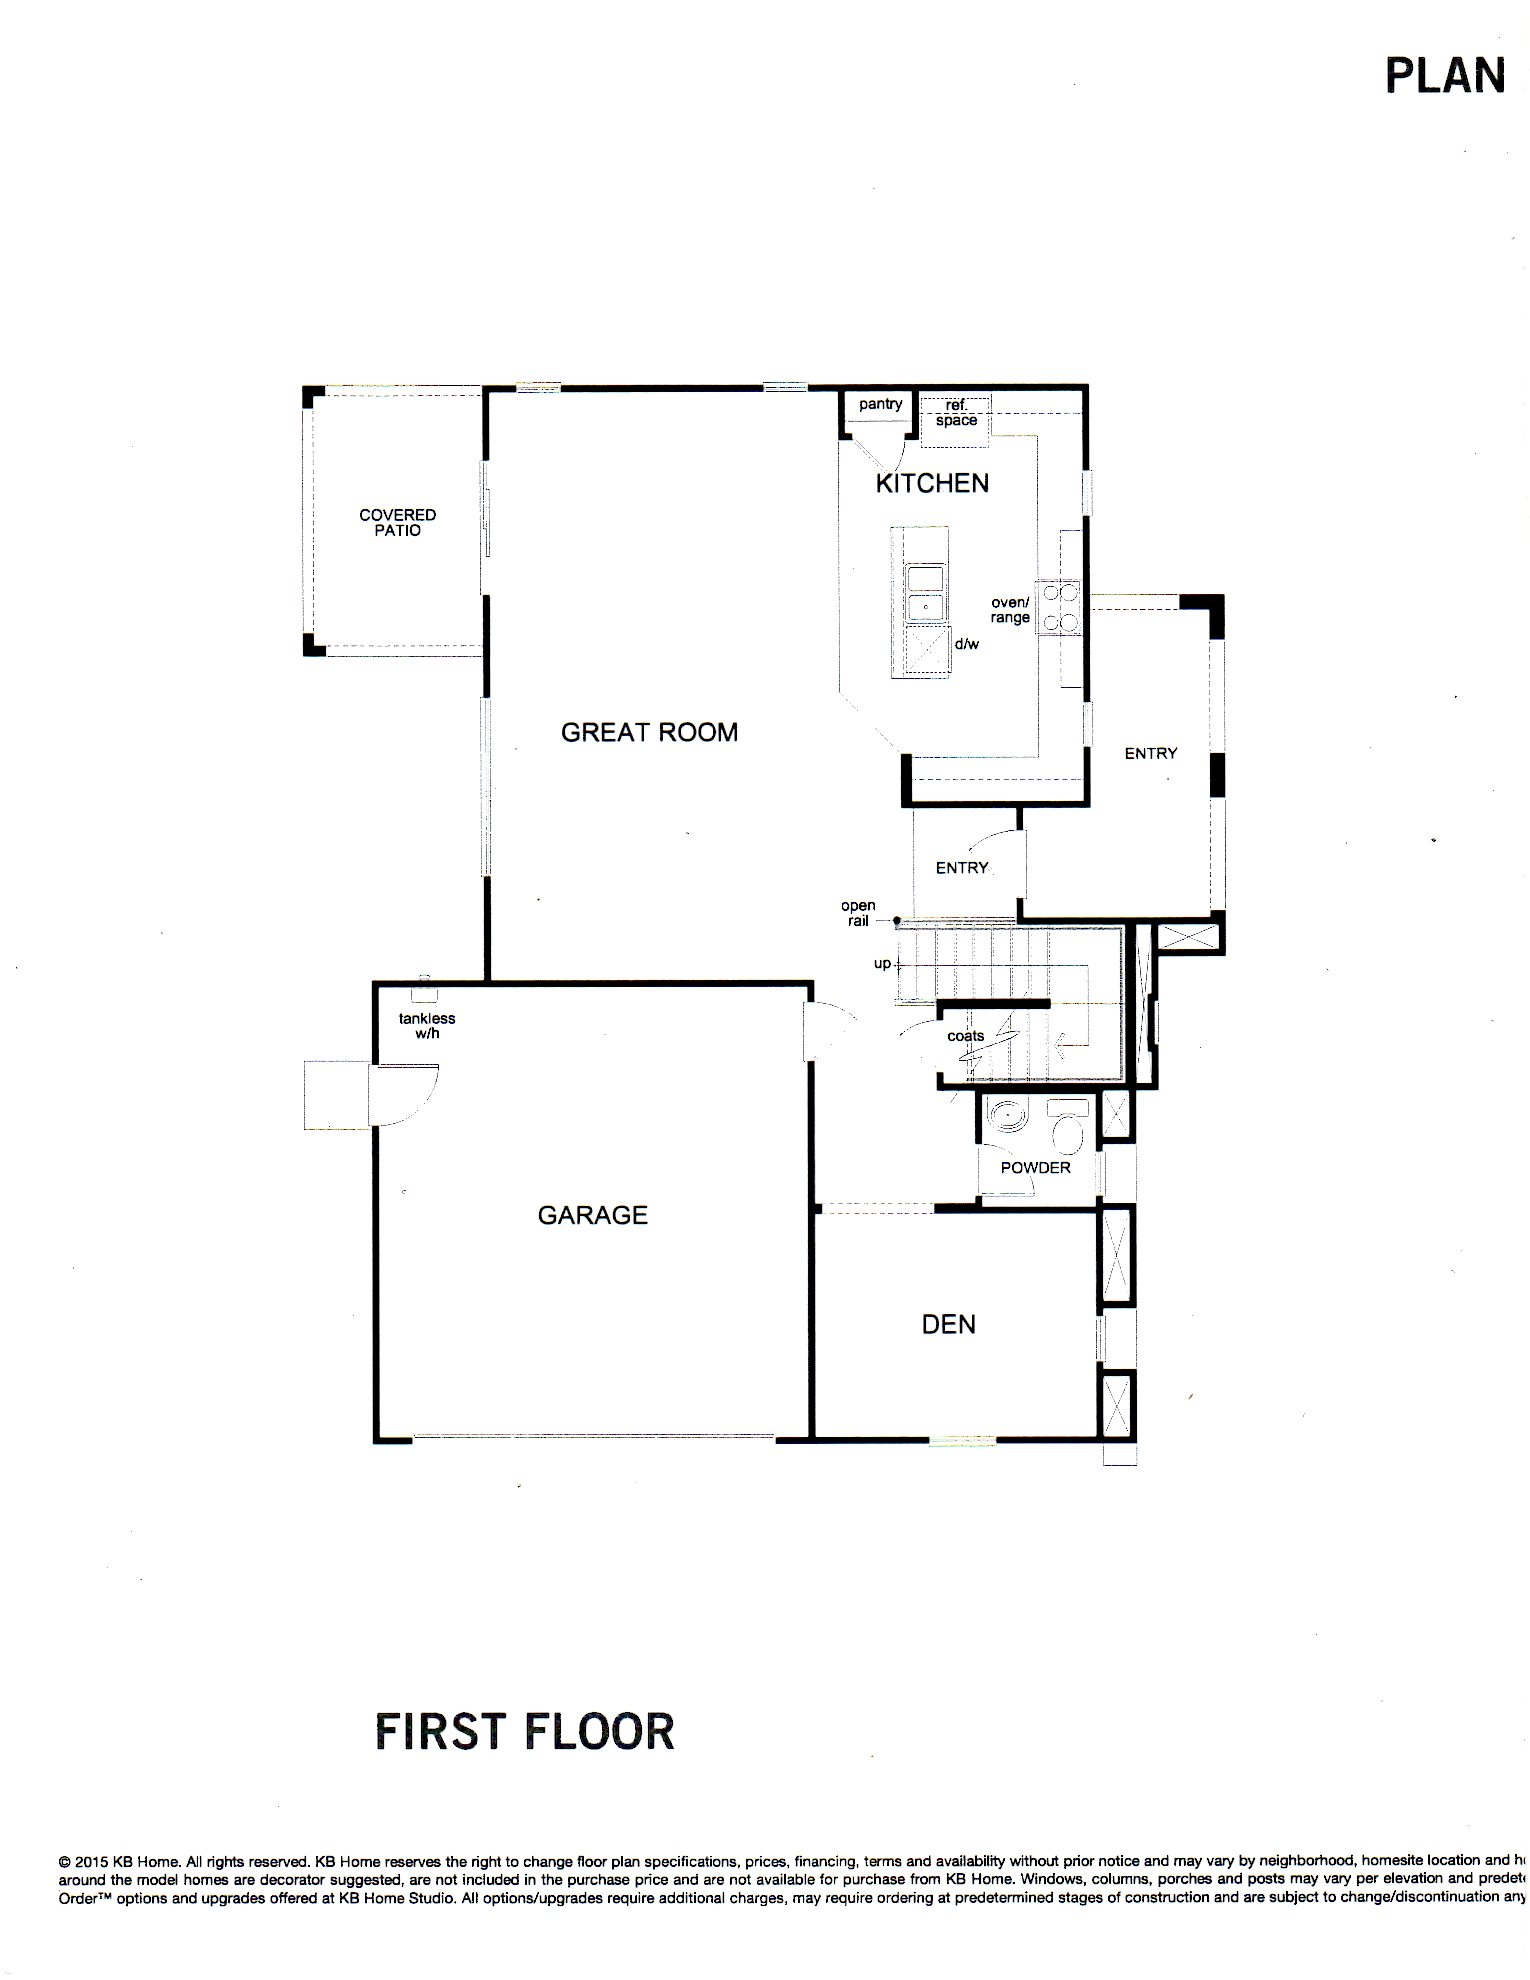 PLAN 2270 -- Two Level Home